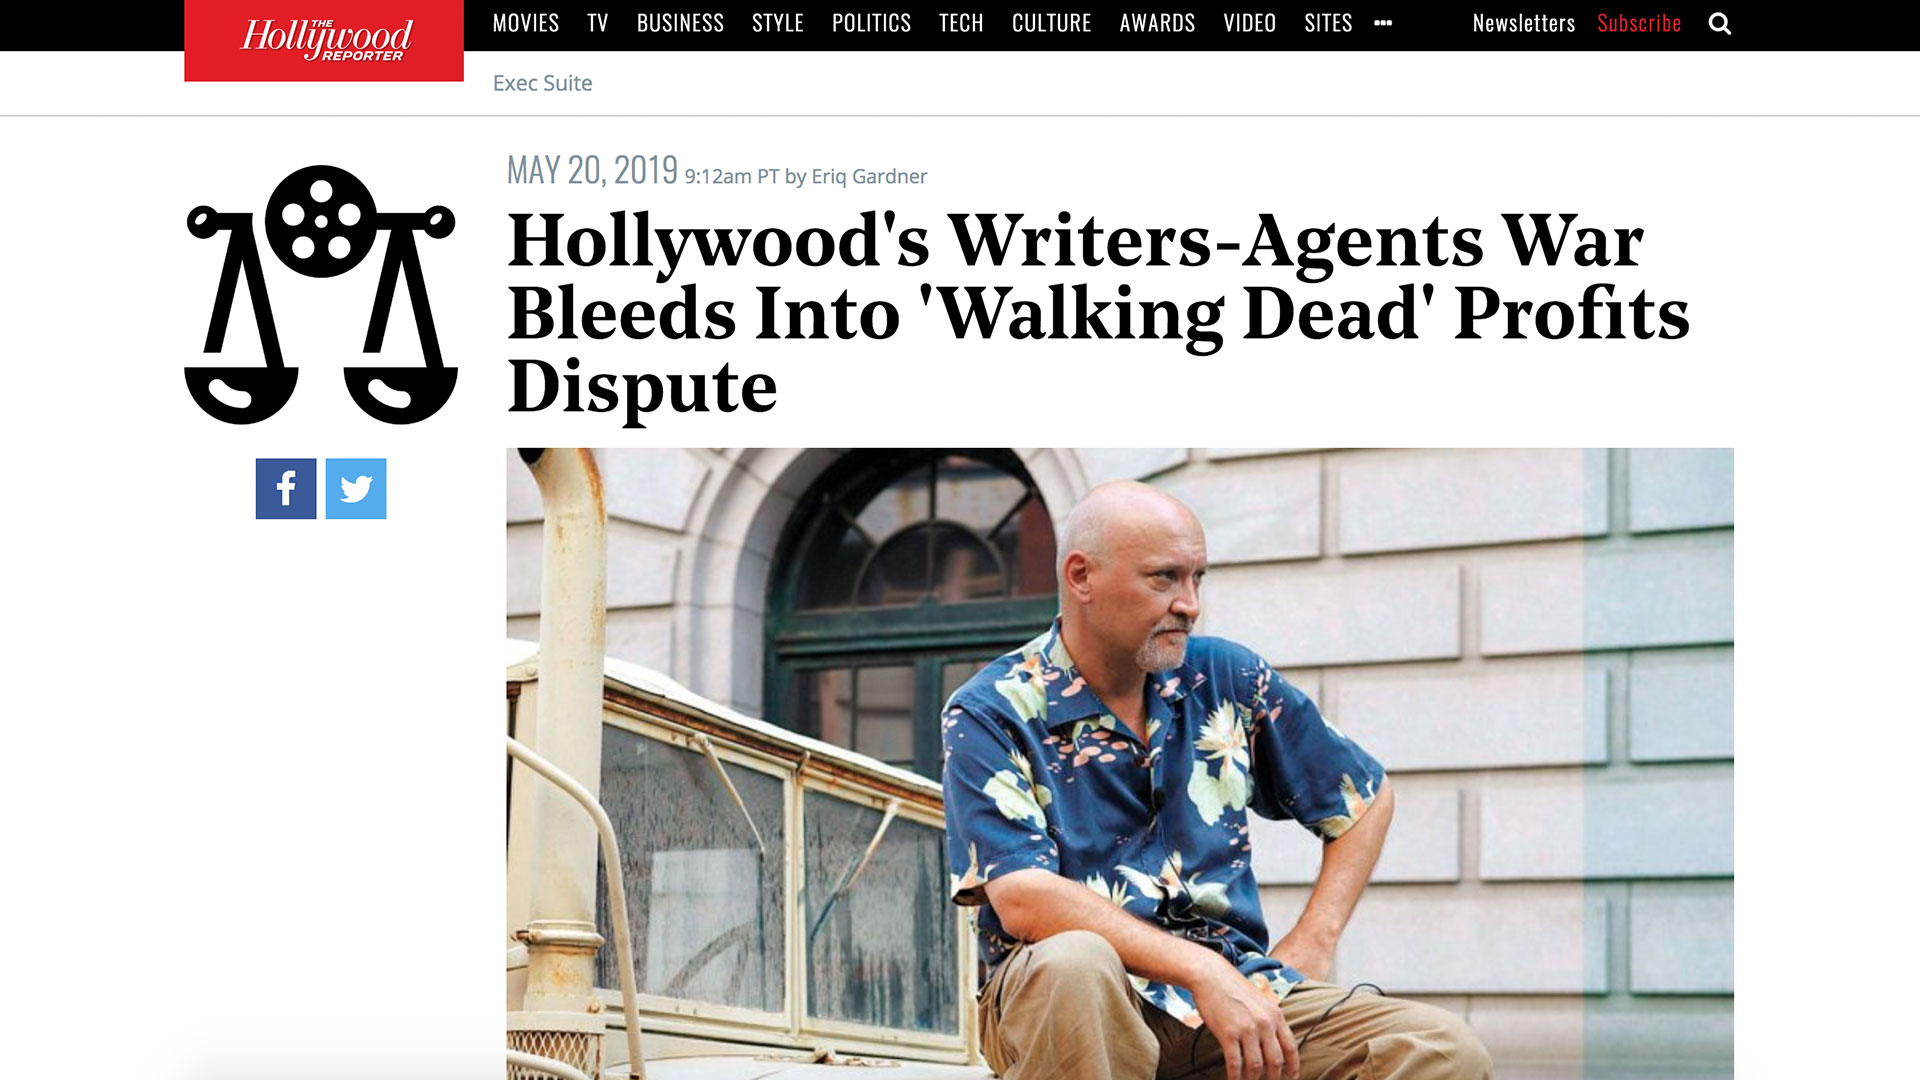 Fairness Rocks News Hollywood's Writers-Agents War Bleeds Into 'Walking Dead' Profits Dispute